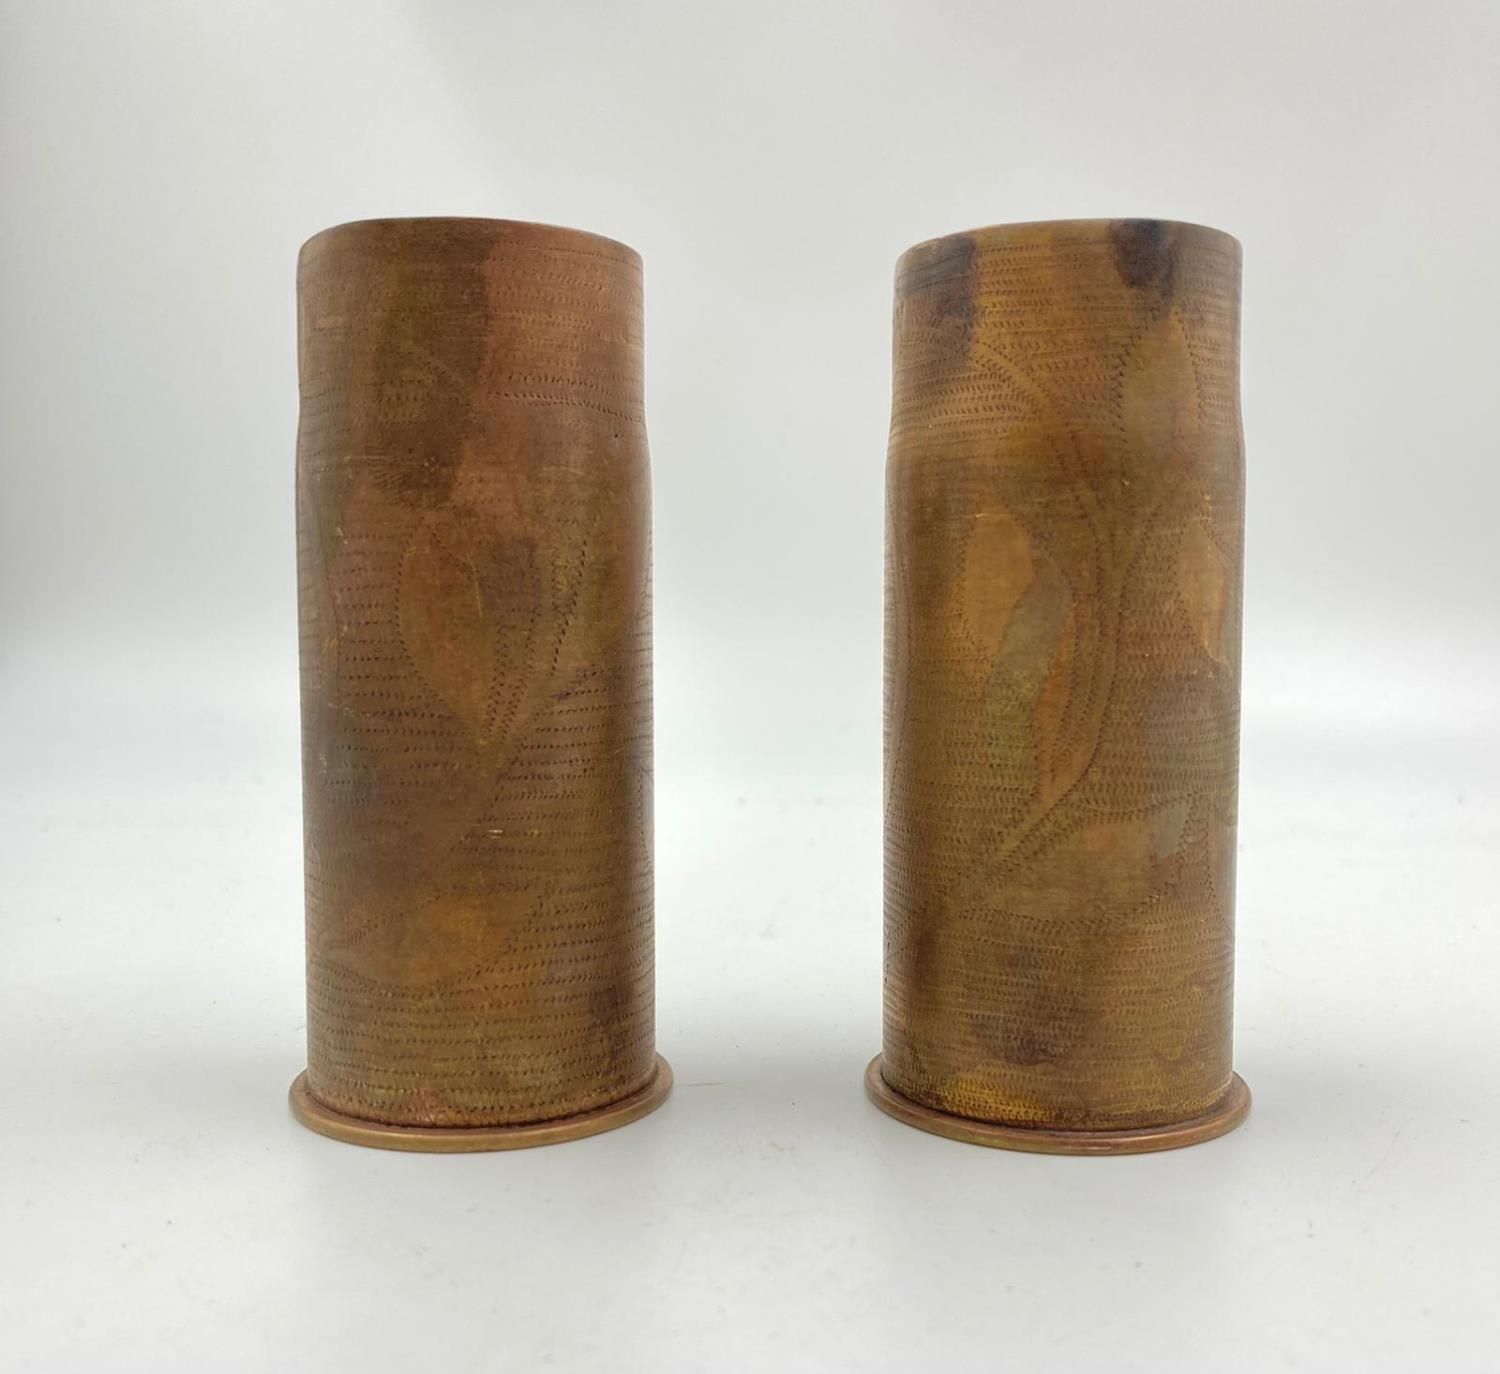 2 x INERT Trench Art 37mm Hotchkiss Cases. They could do with a good polish. - Image 3 of 4